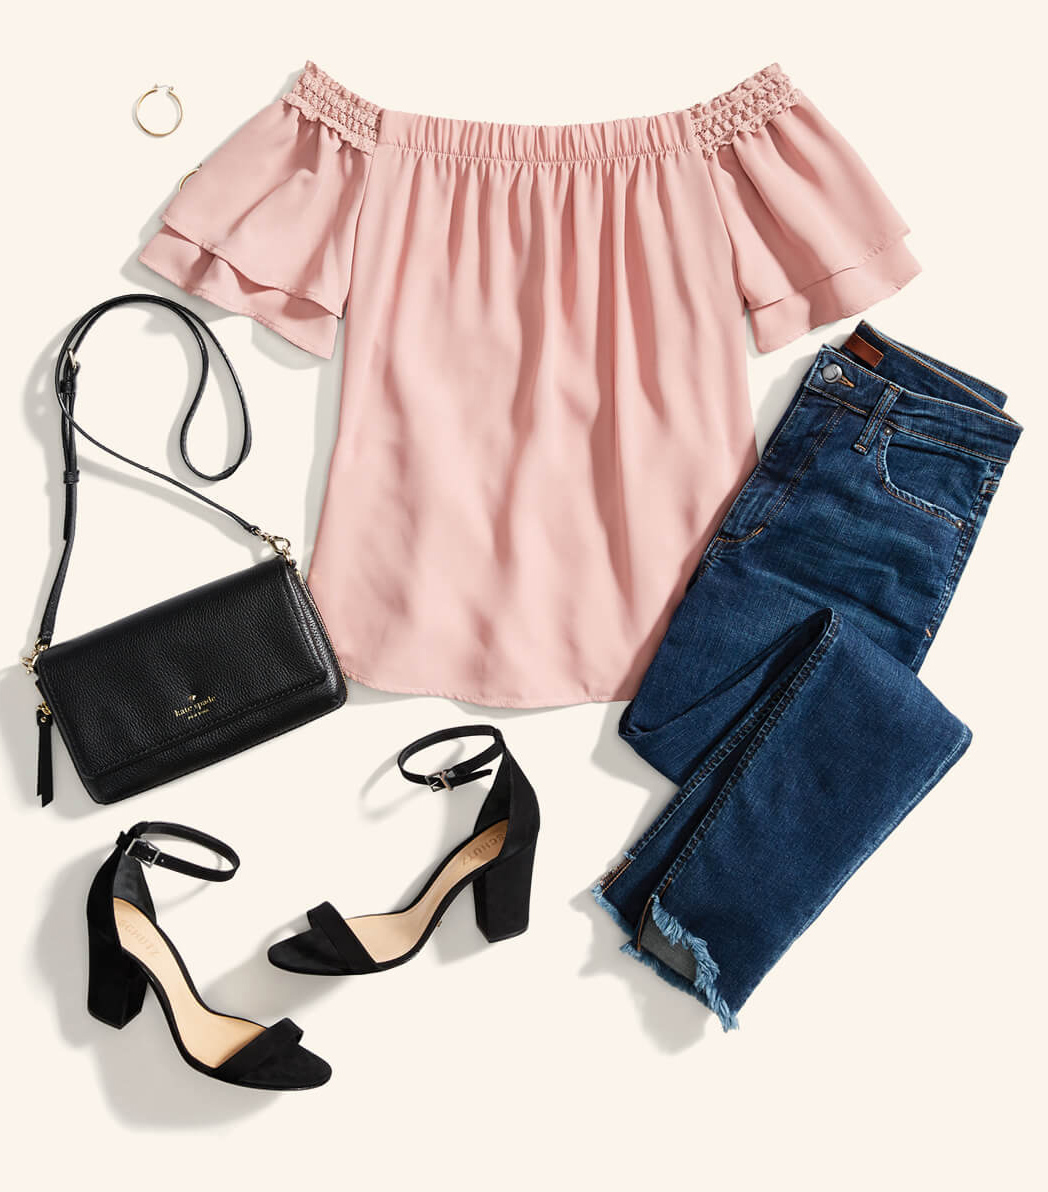 blue-med-skinny-jeans-hoops-black-bag-black-shoe-sandalh-pink-light-top-offshoulder-spring-summer-dinner.jpg